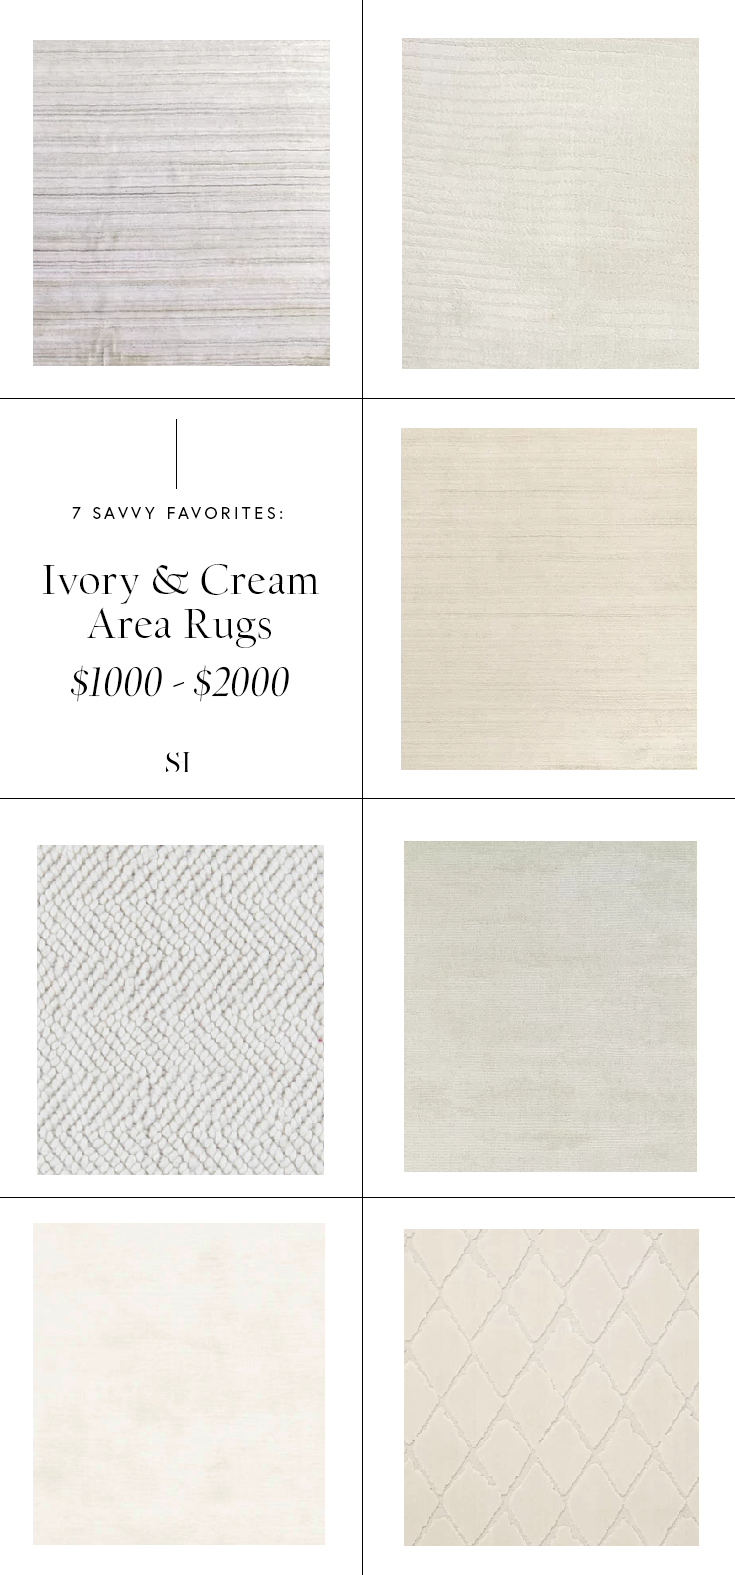 Interior Area Rugs that are minimal textured and modern from $1000 to $2000 by the savvy heart.png